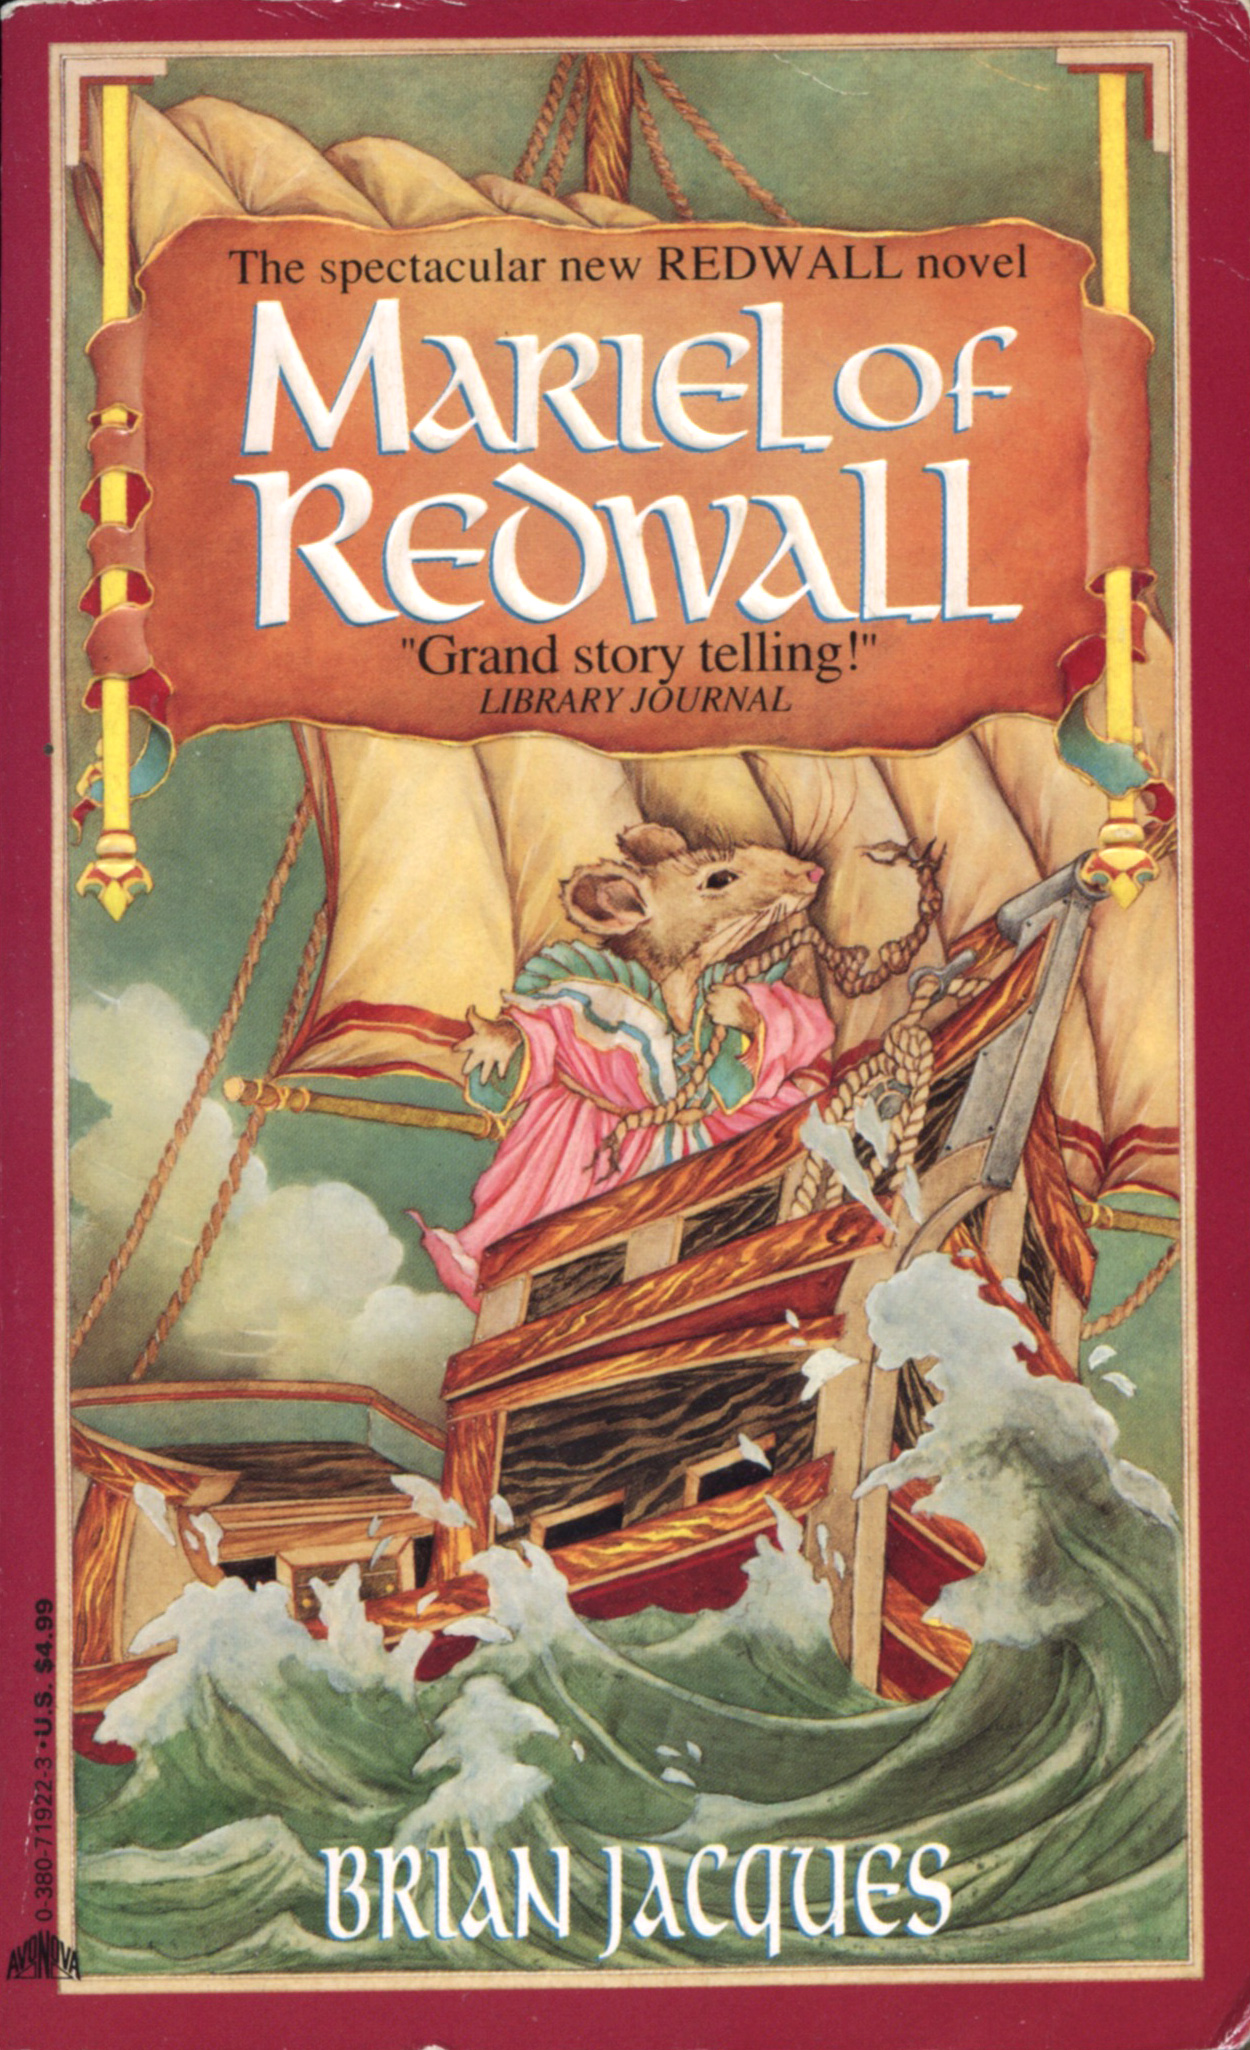 an analysis of redwall